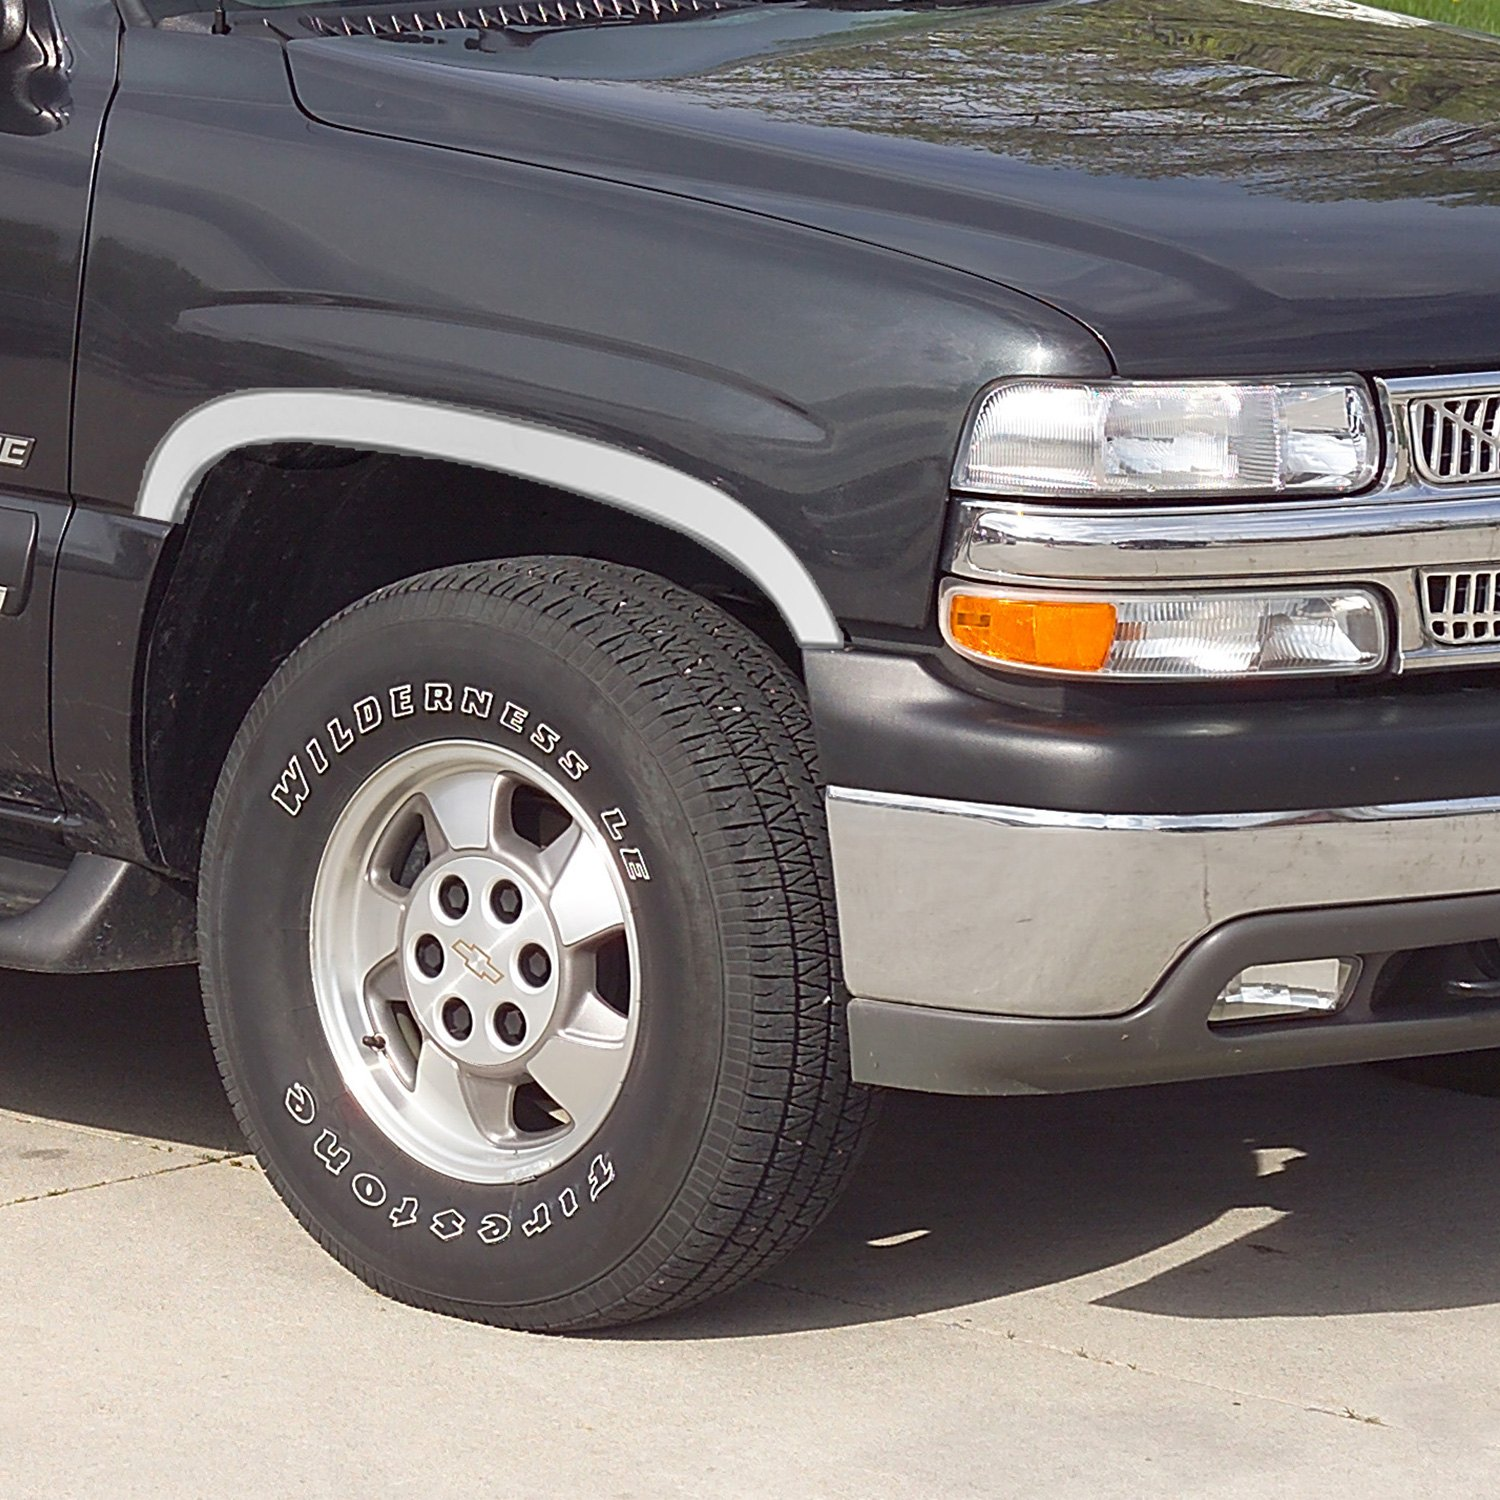 1997 Chevrolet Tahoe Exterior: Chevy Tahoe 1997 Polished Fender Trim